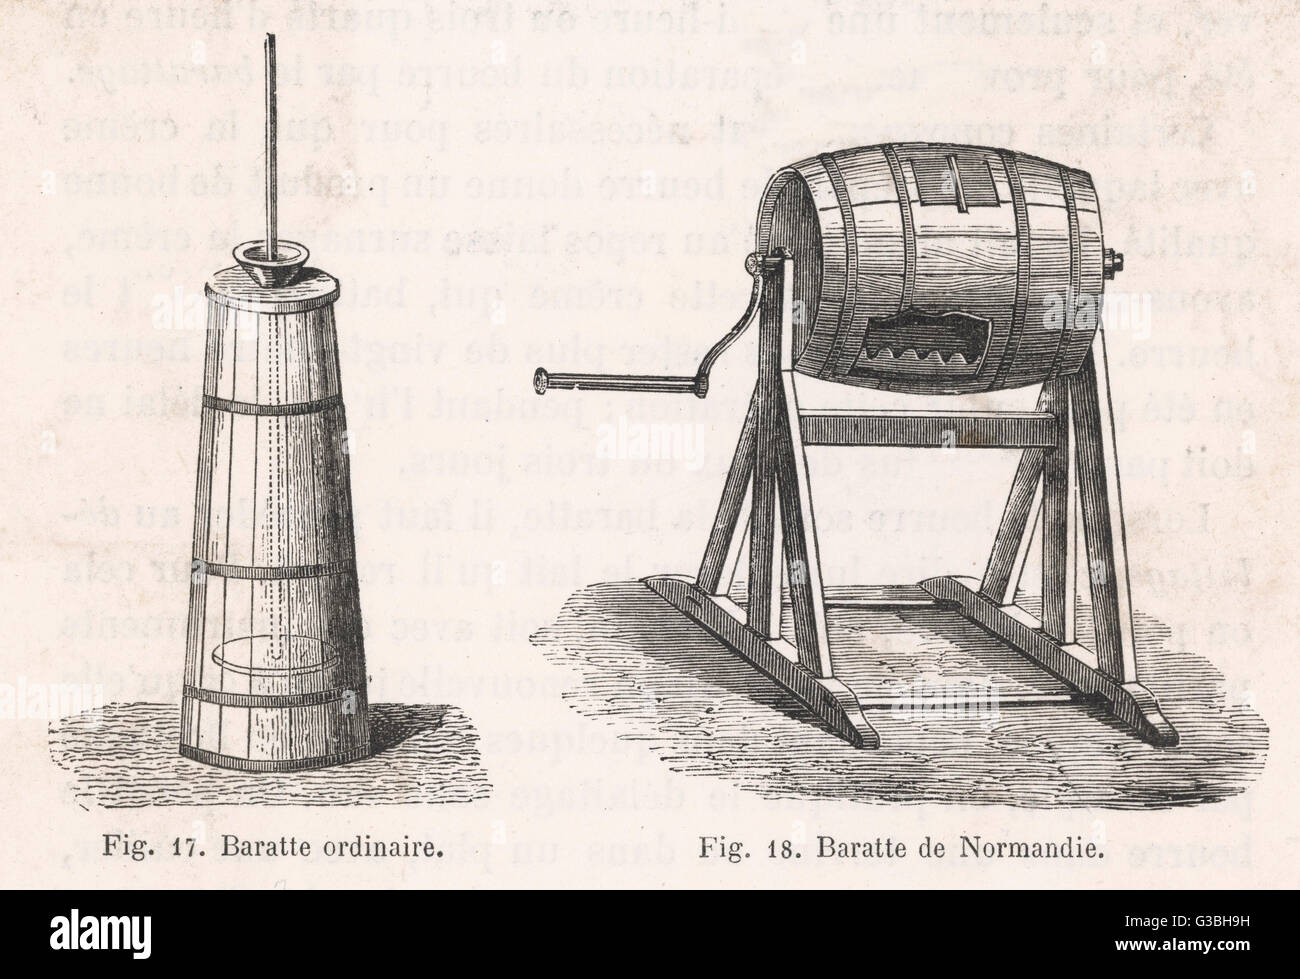 A traditonal butter churn  (left) and a barrel-type from  Normandy (right)        Date: 1878 Stock Photo